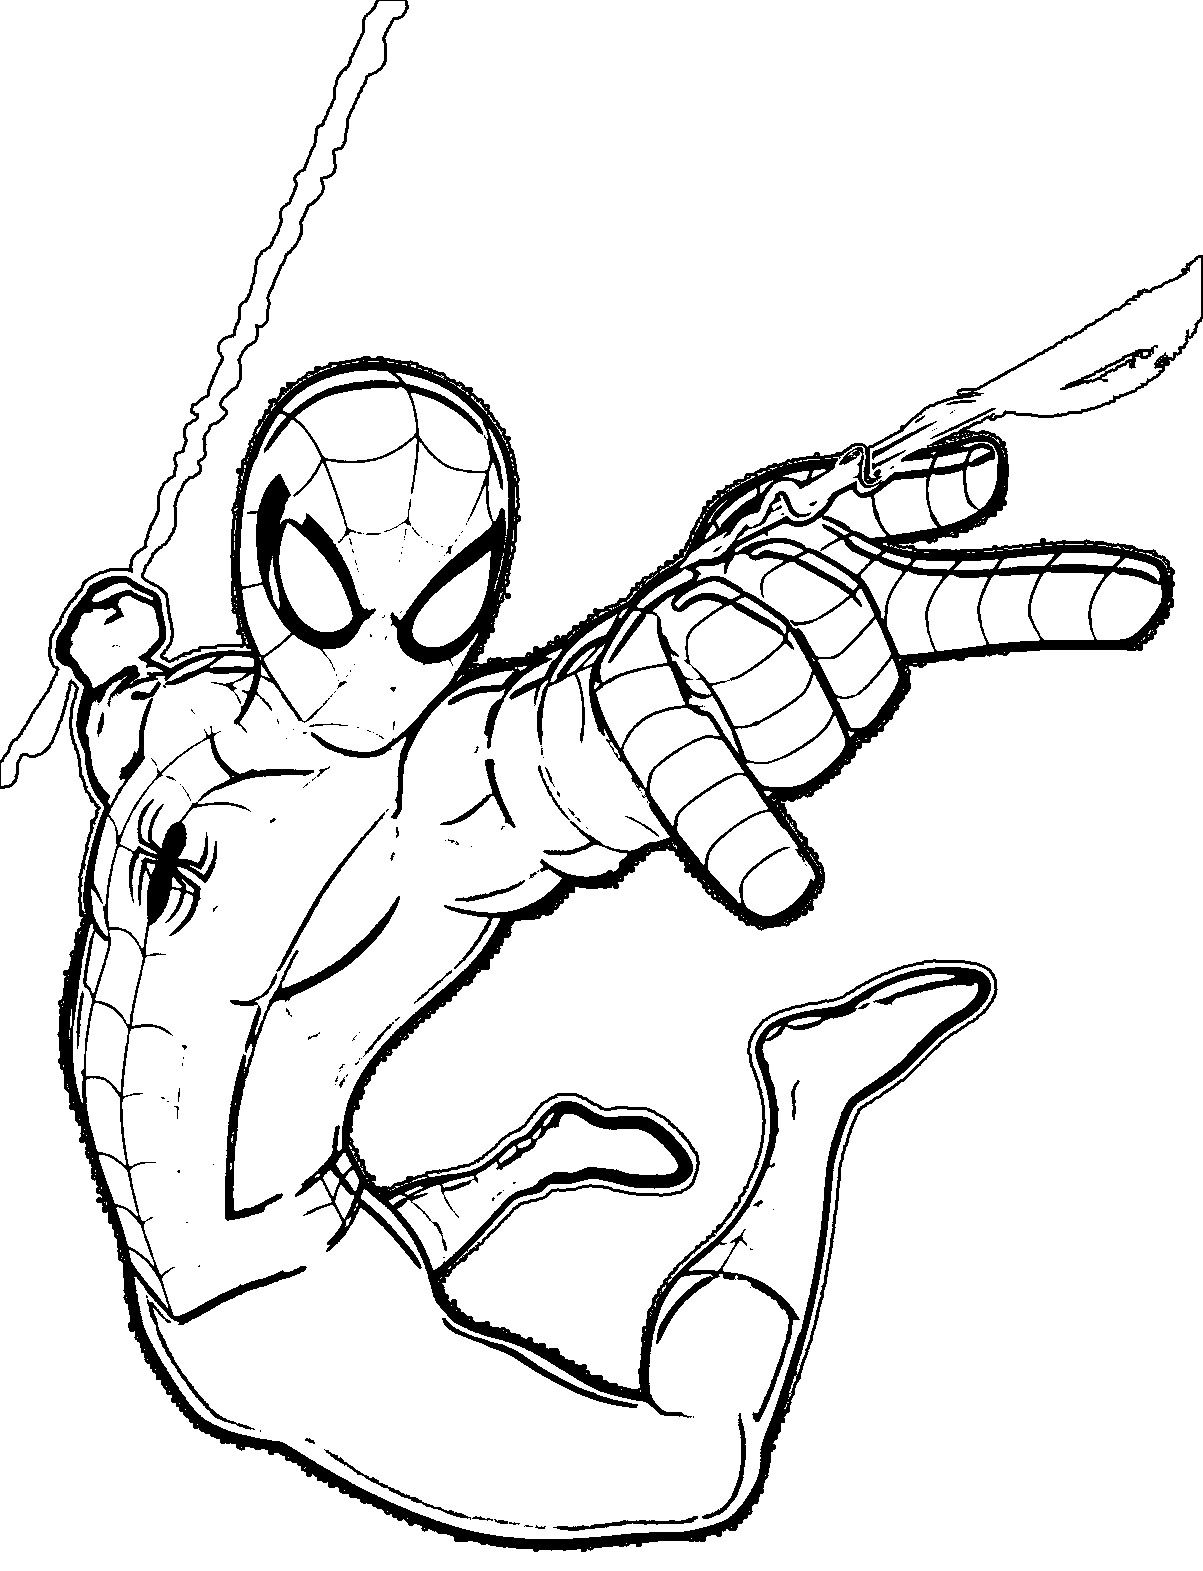 Easy Spiderman Coloring Pages : spiderman, coloring, pages, Printable, Spiderman, Coloring, Pages,, Sheets, Coloring,, Marvel, Drawing